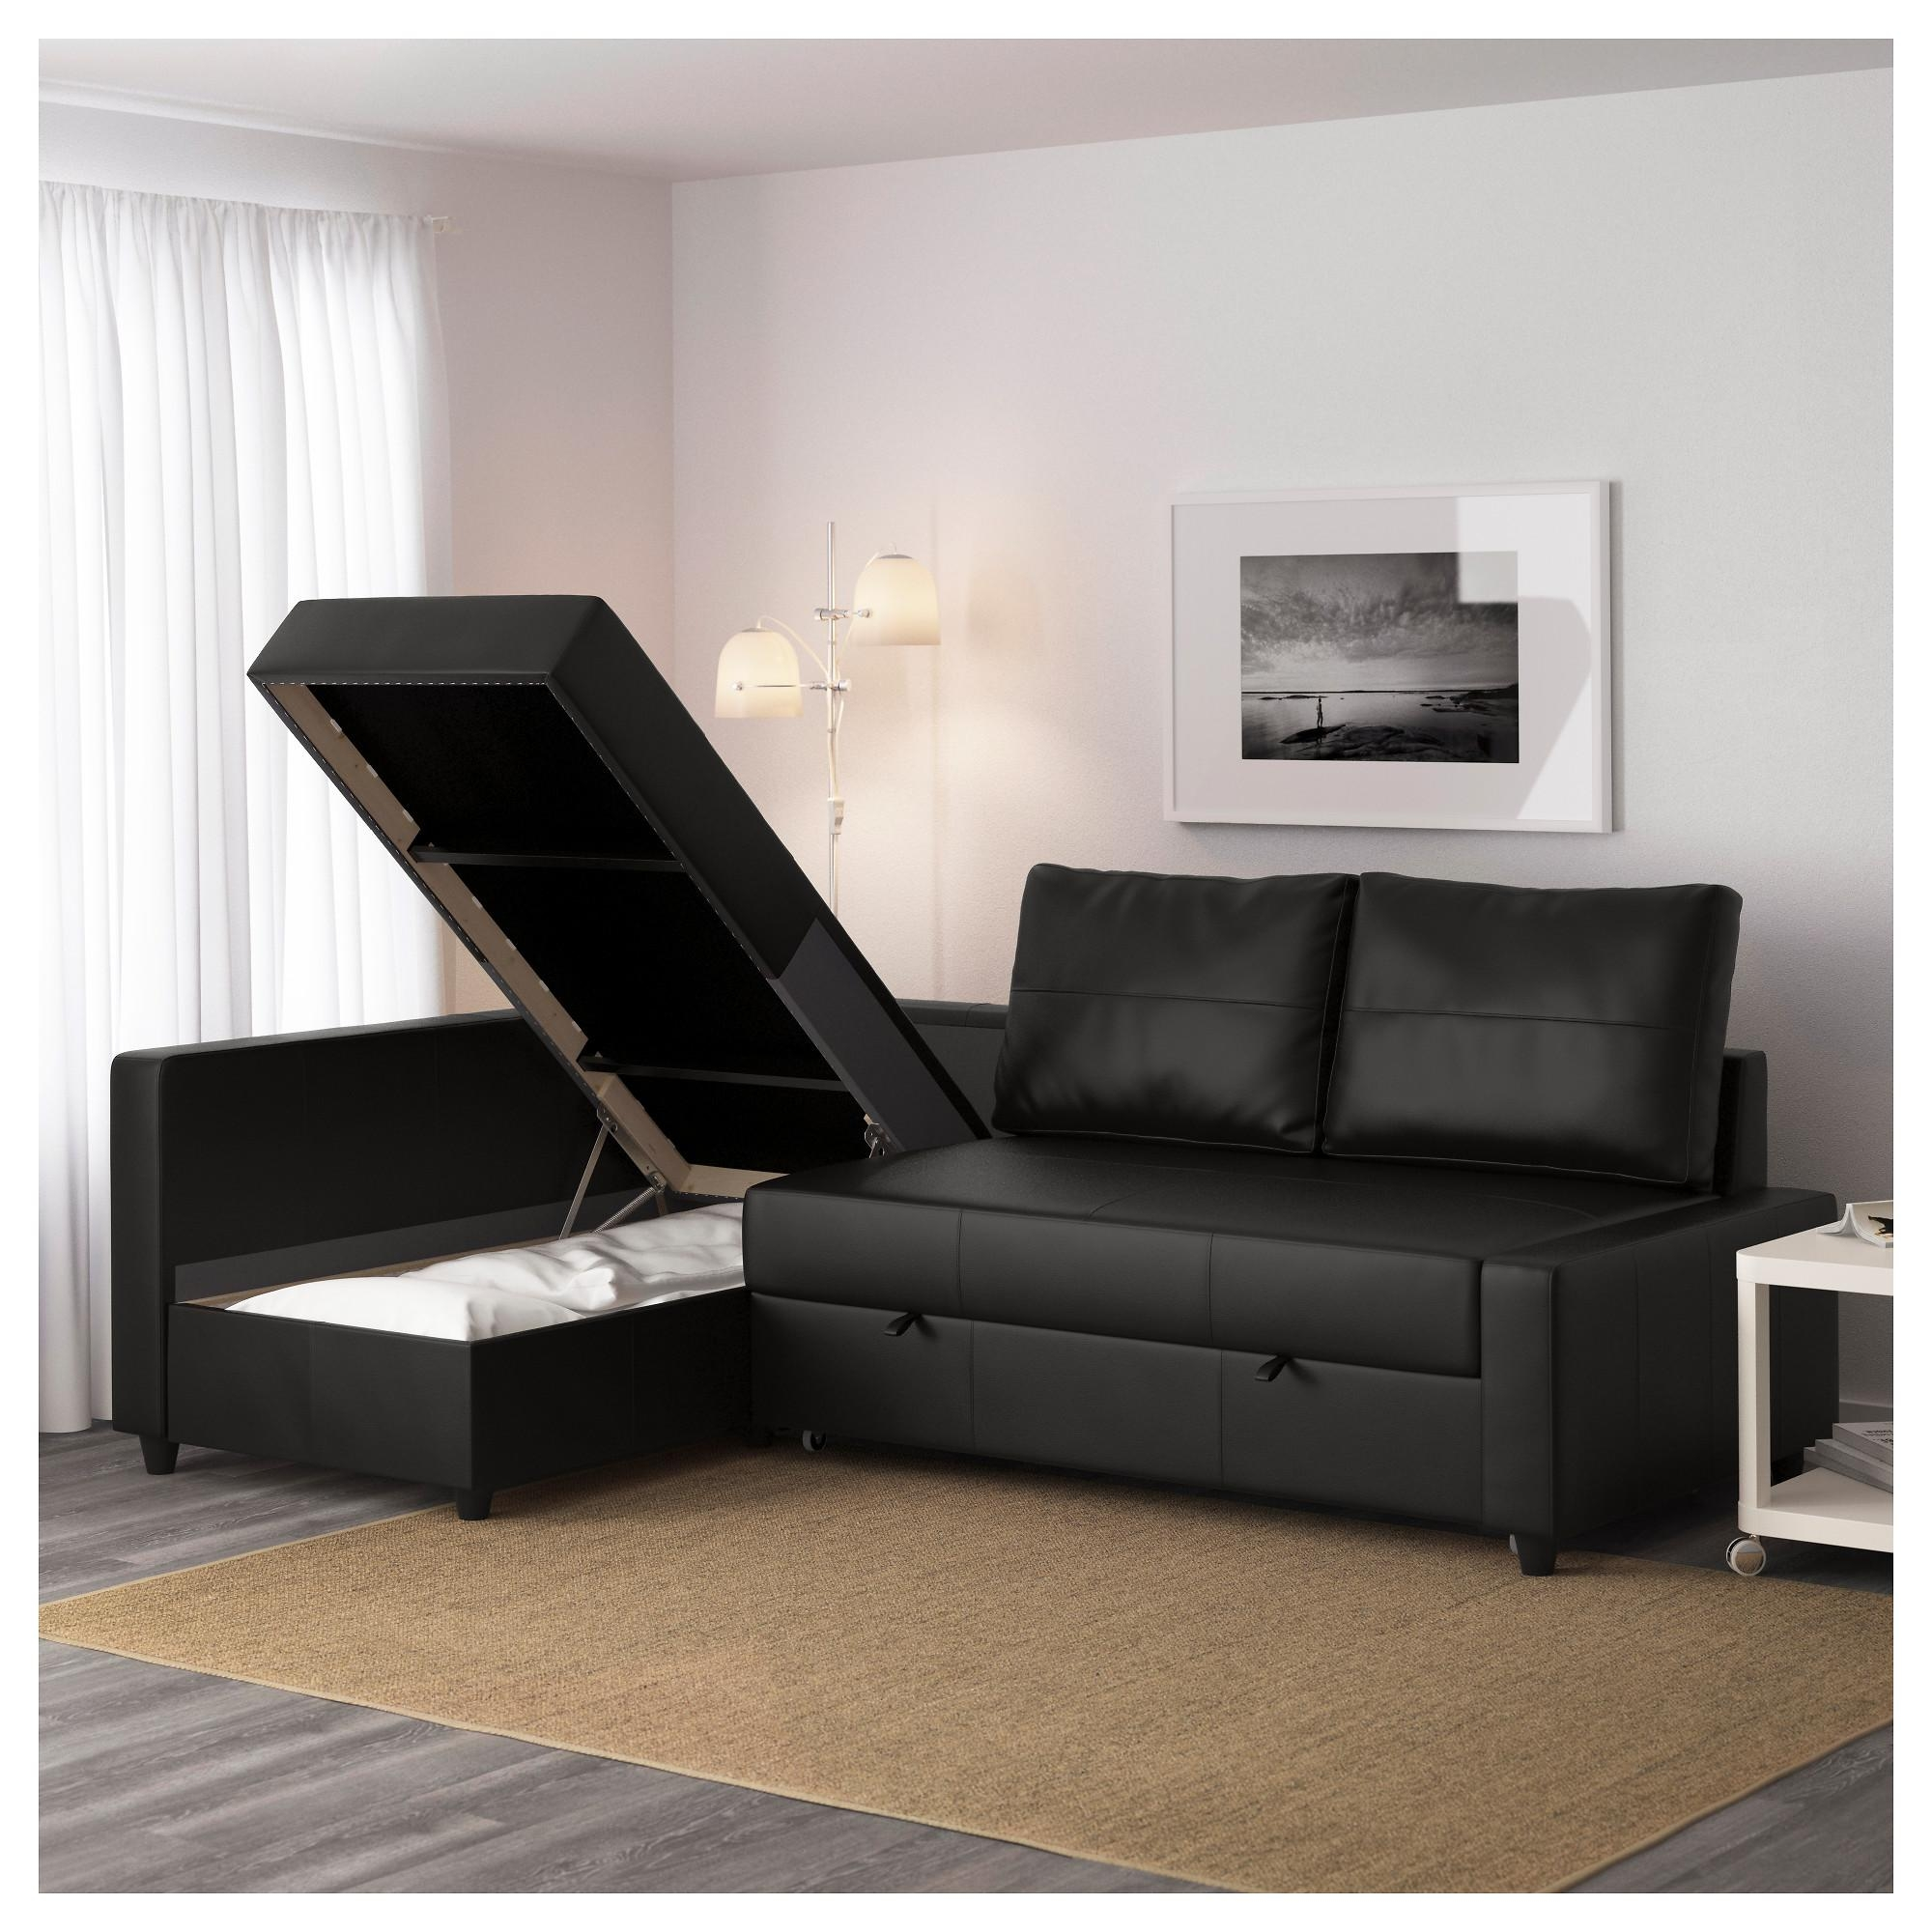 Friheten Sleeper Sectional,3 Seat W/storage – Skiftebo Dark Gray With Sleeper Sectional Sofa Ikea (Image 6 of 20)